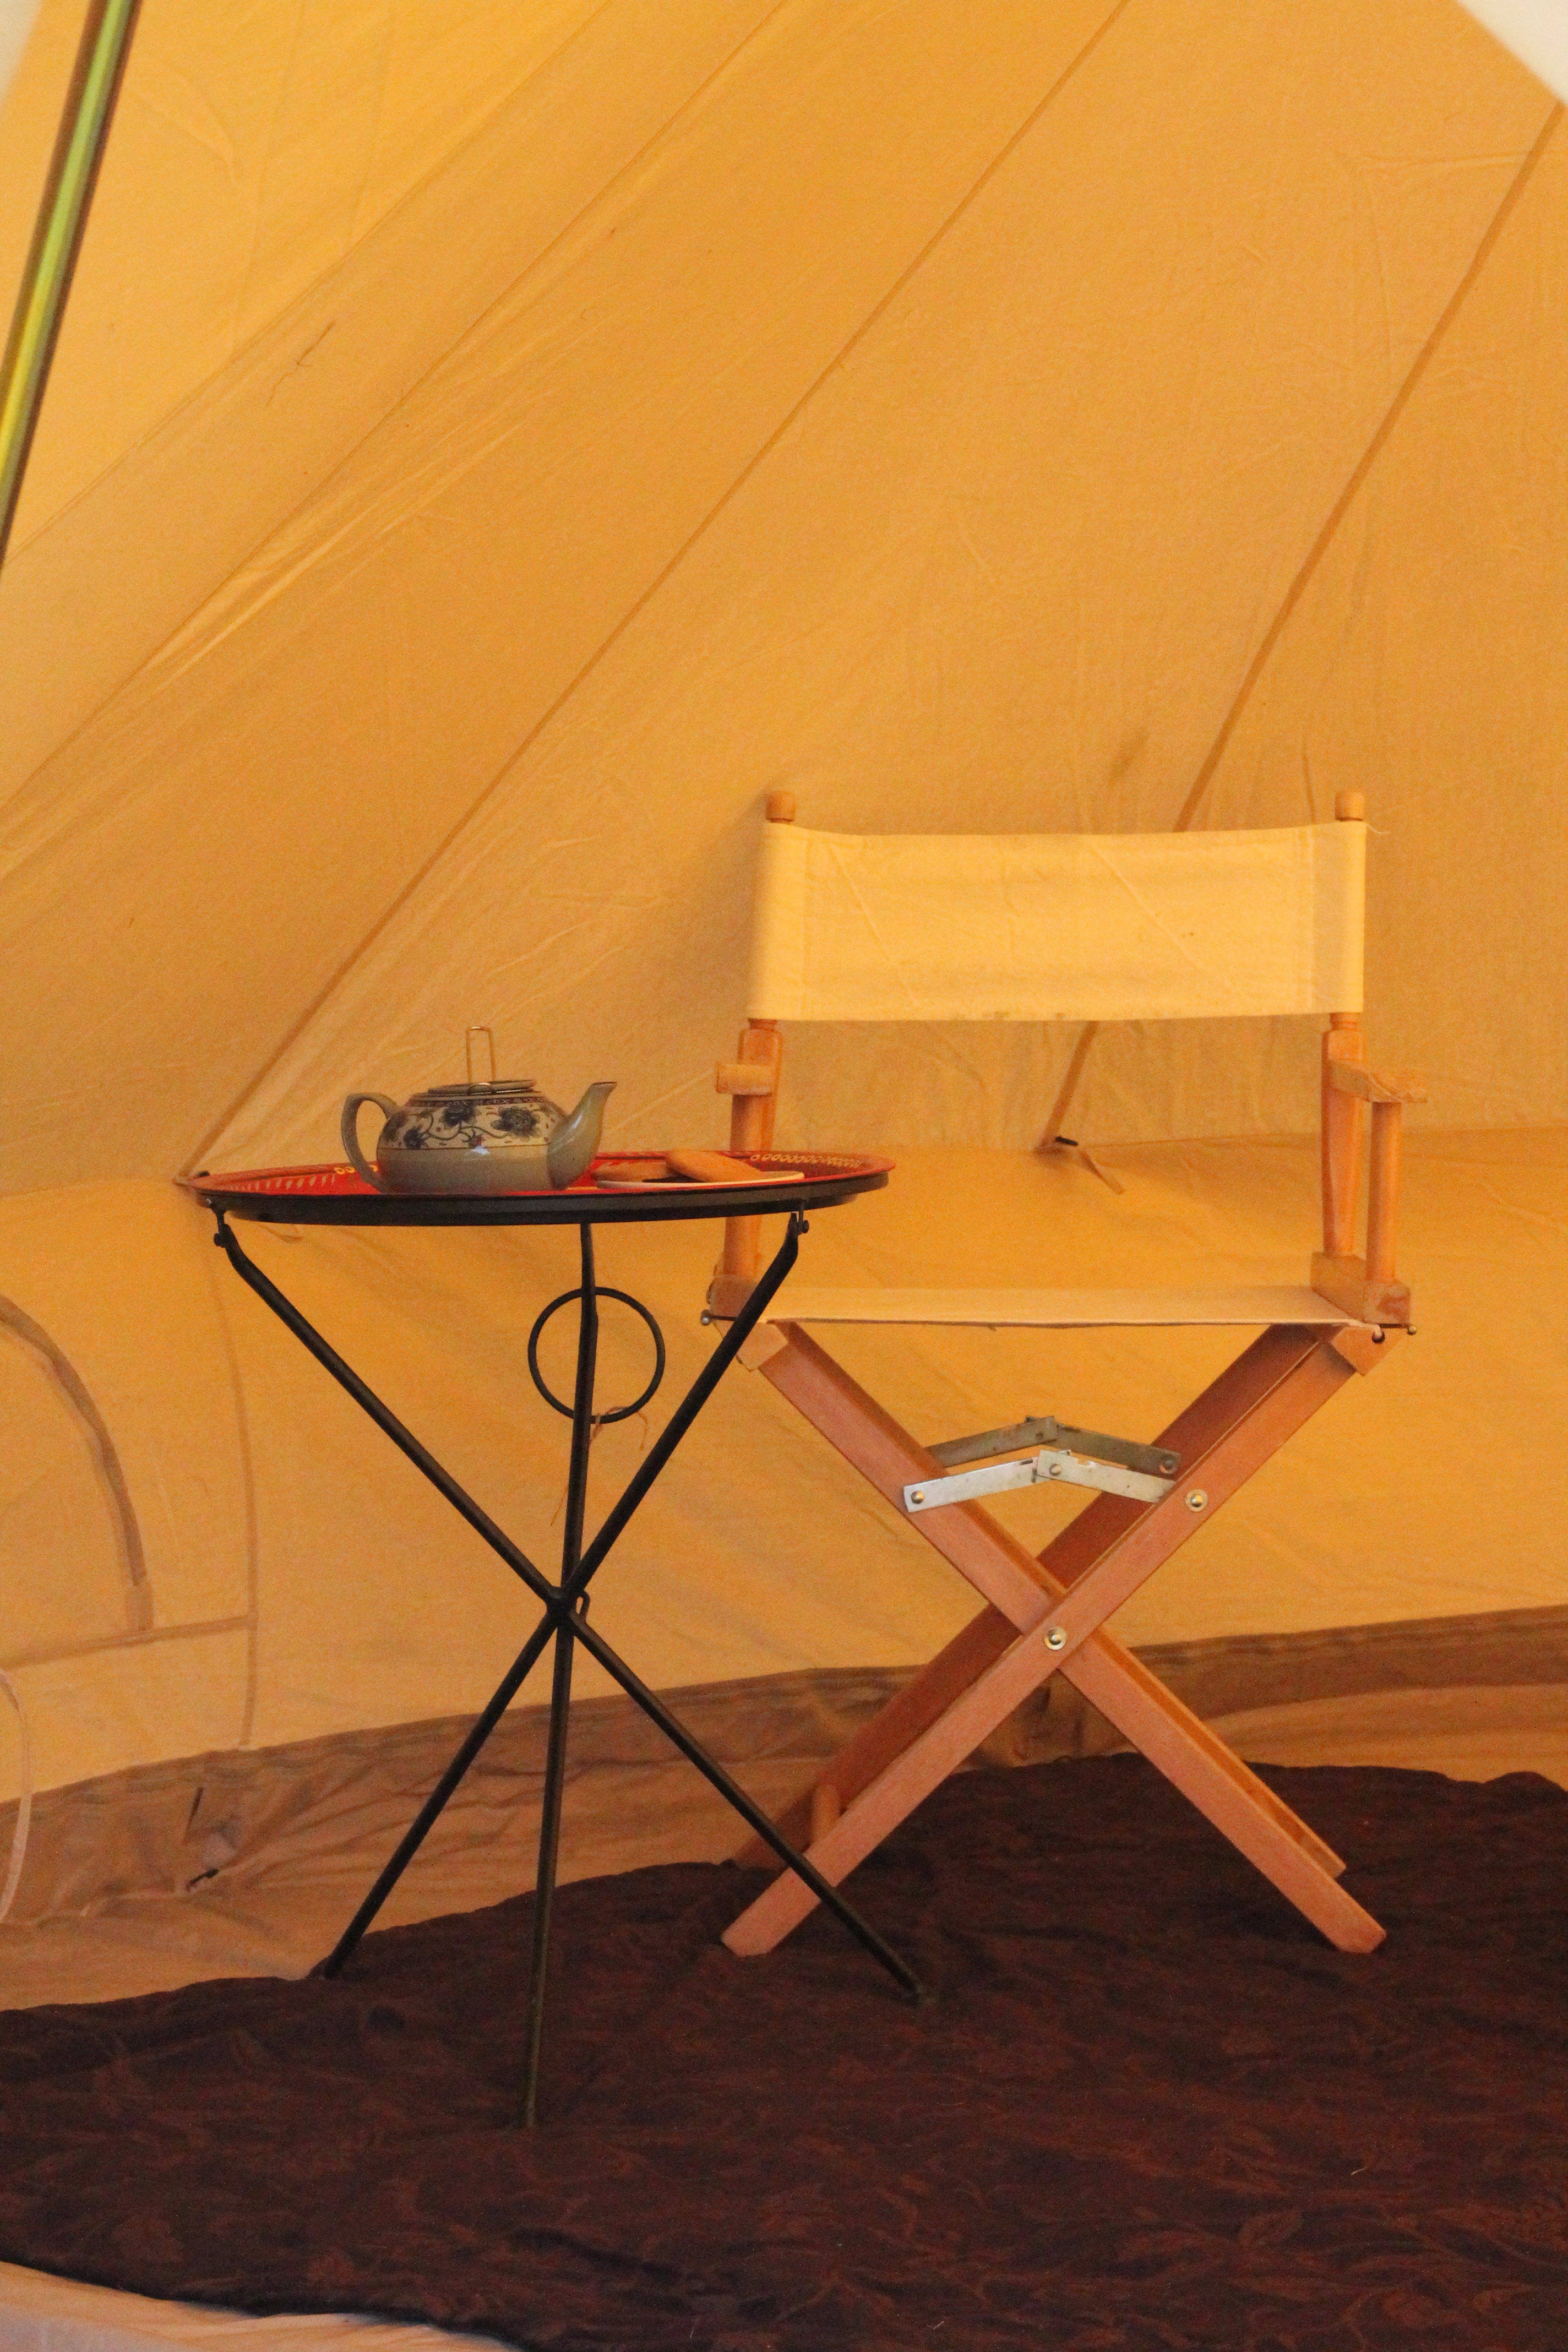 Strathcona Table and Chair & Rowan Tree Tents | Bell Tent Hire in Scotland